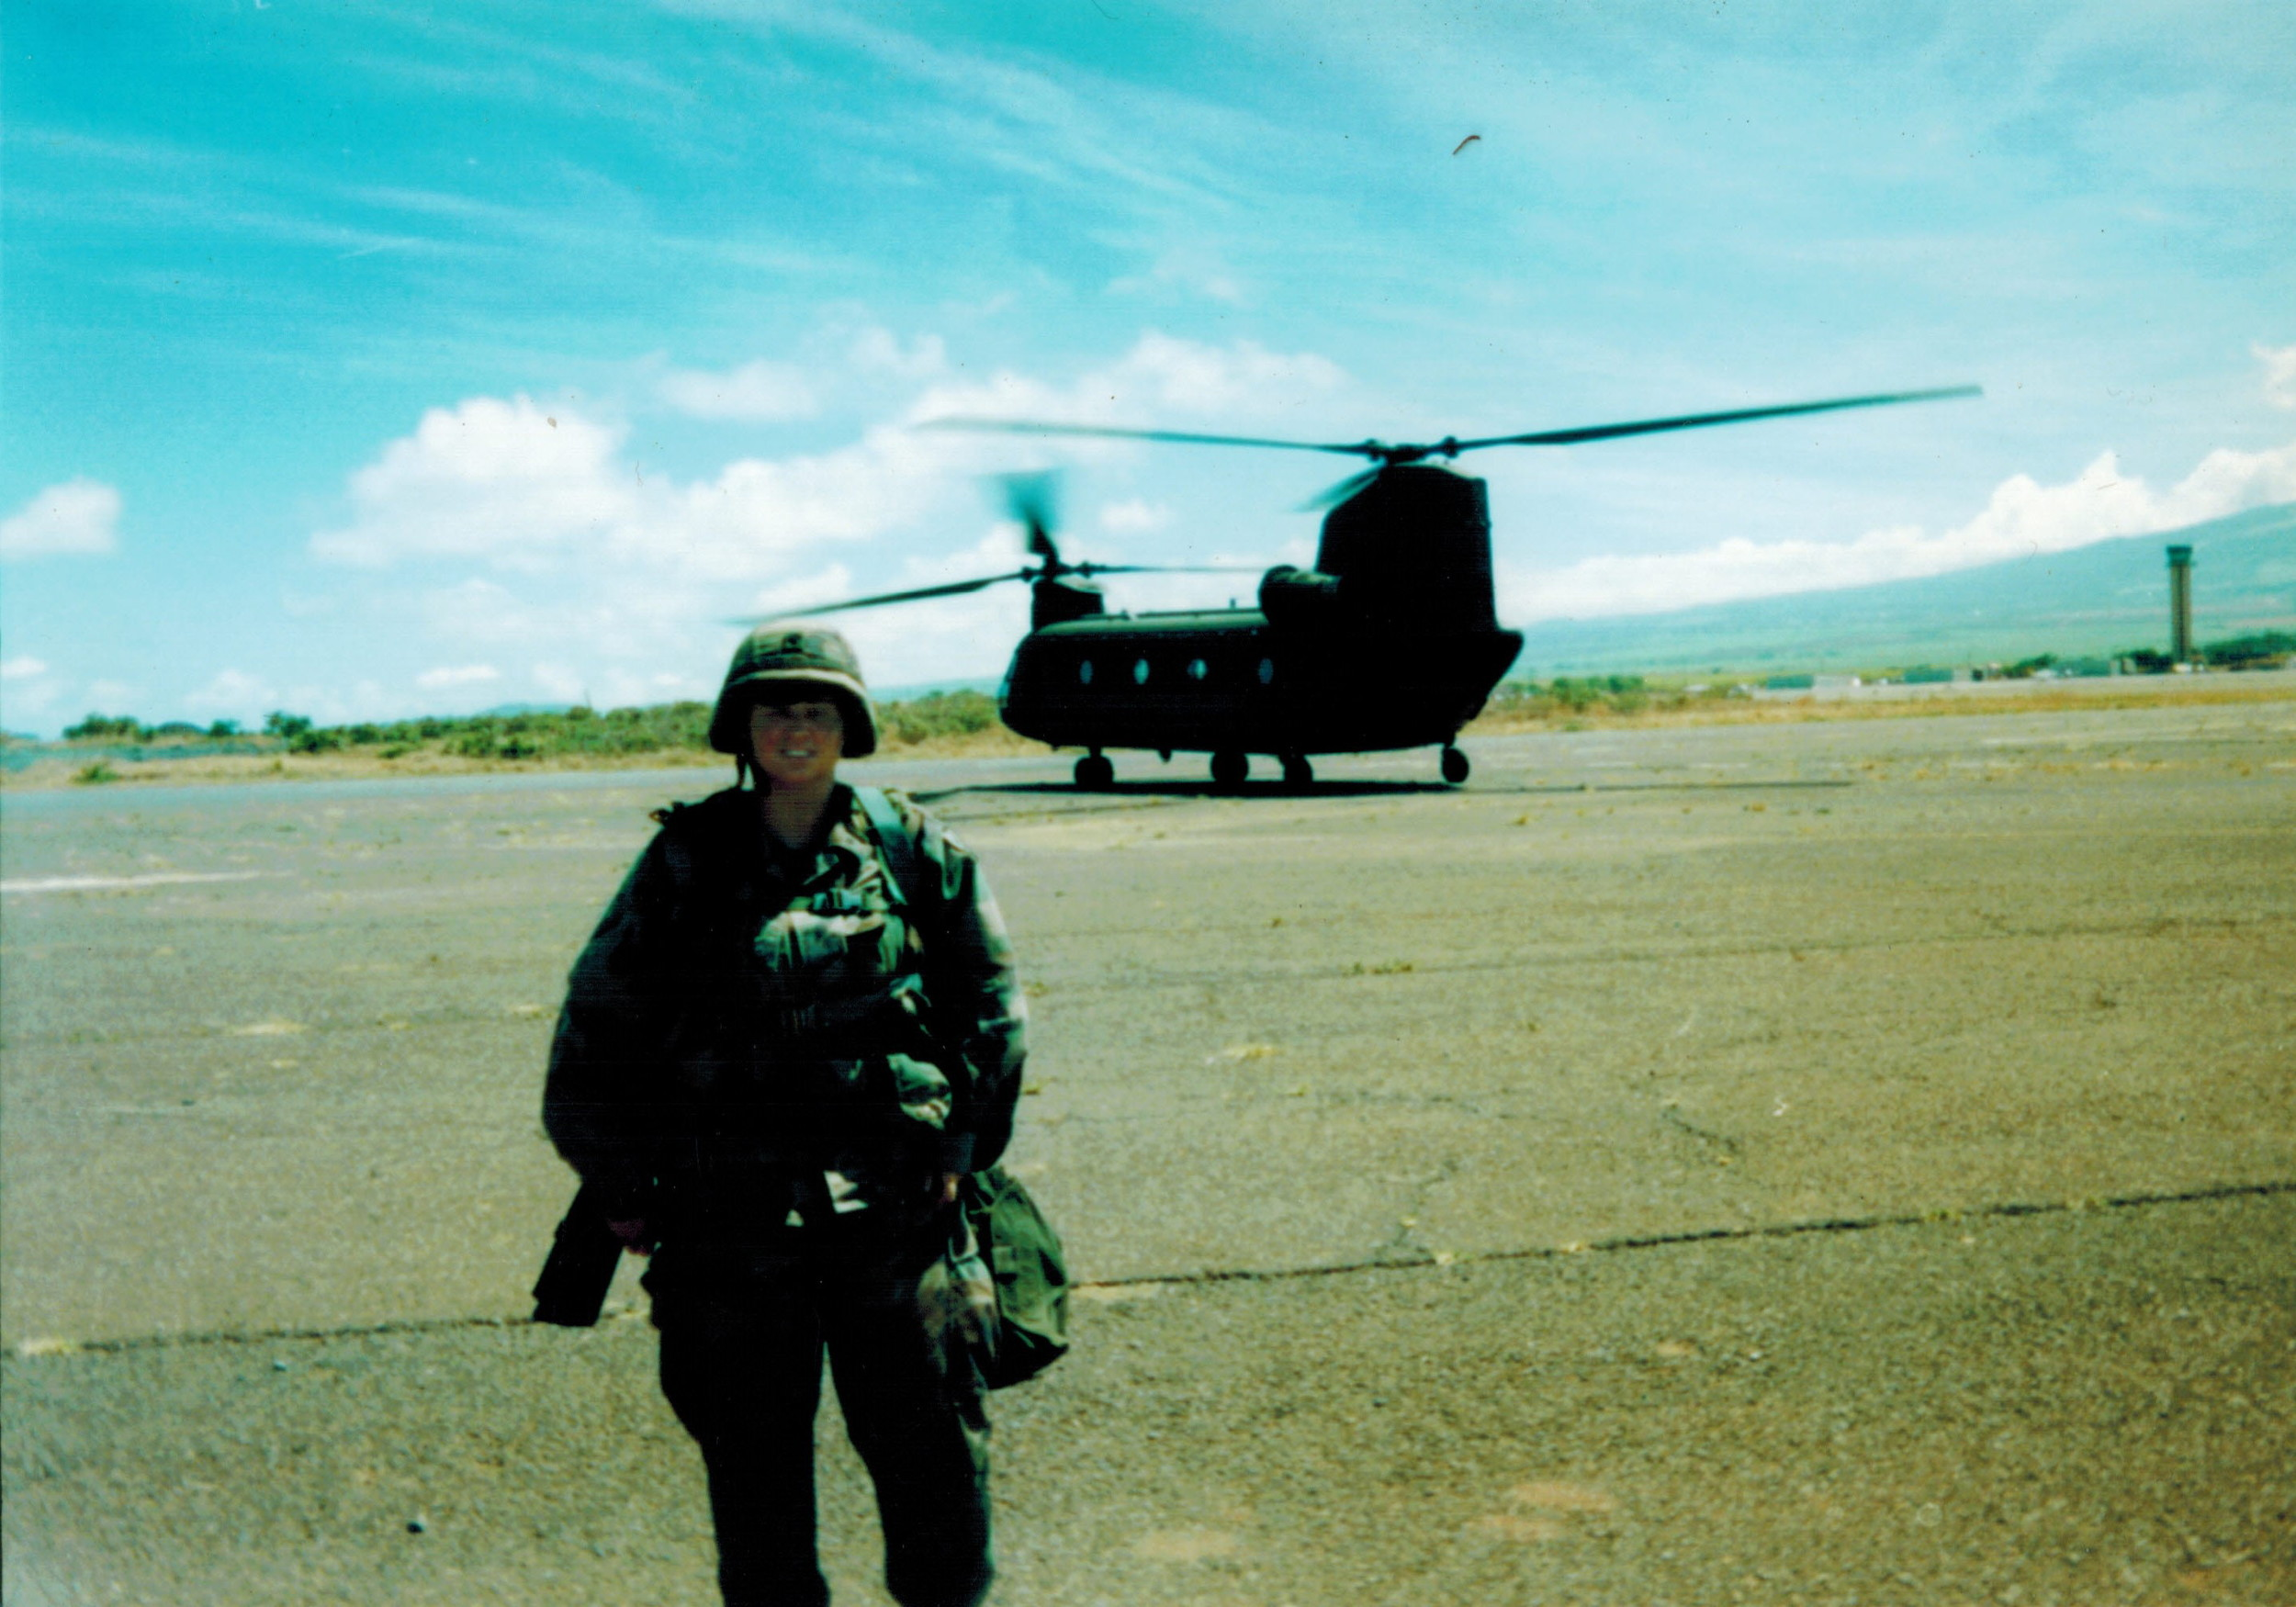 The author, PS Wright, while a SPC in the Army, Wheeler Air Field, Hawaii